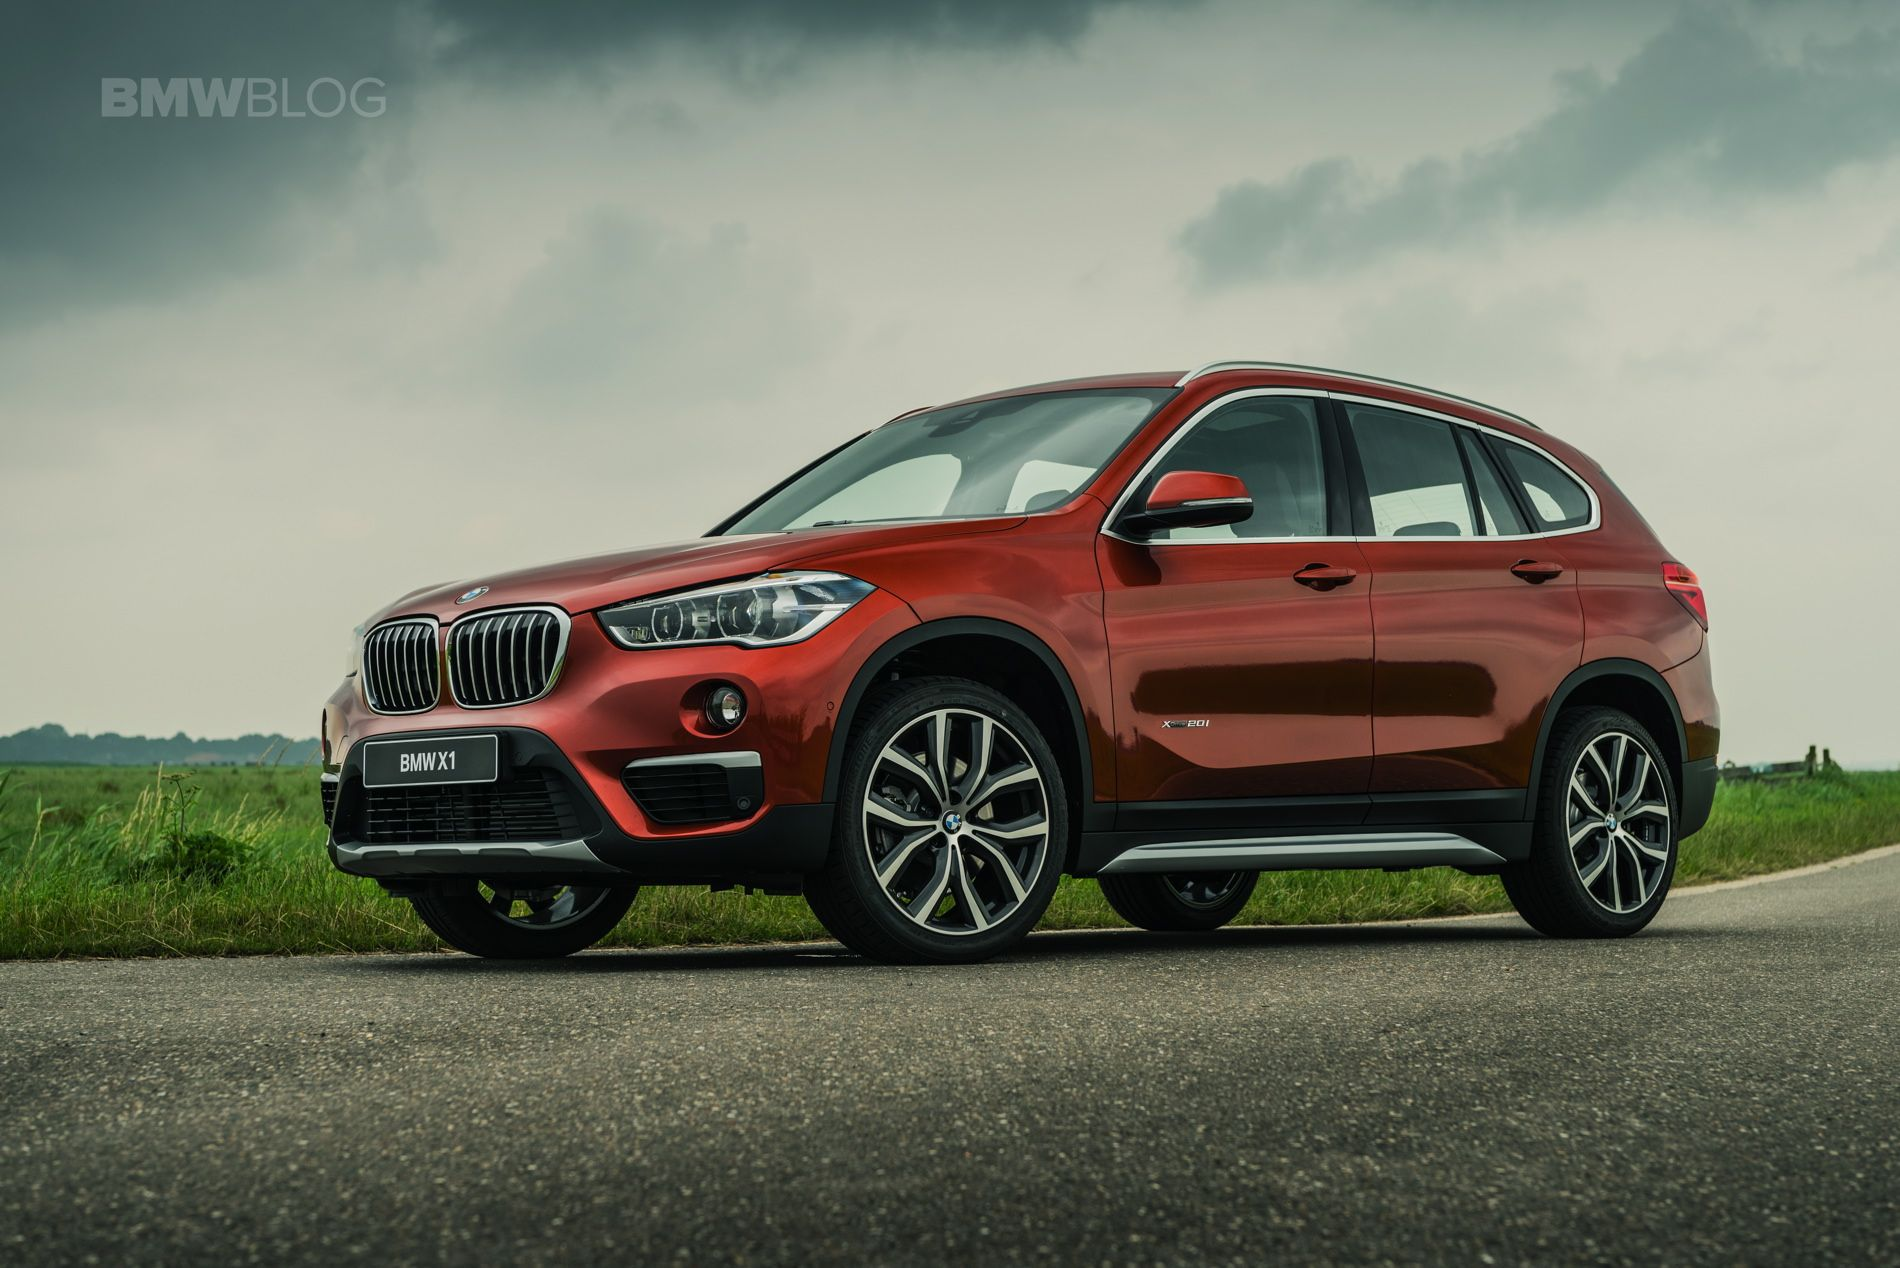 2017 Bmw X1 Orange Edition Special Model In The Netherlands Bmw